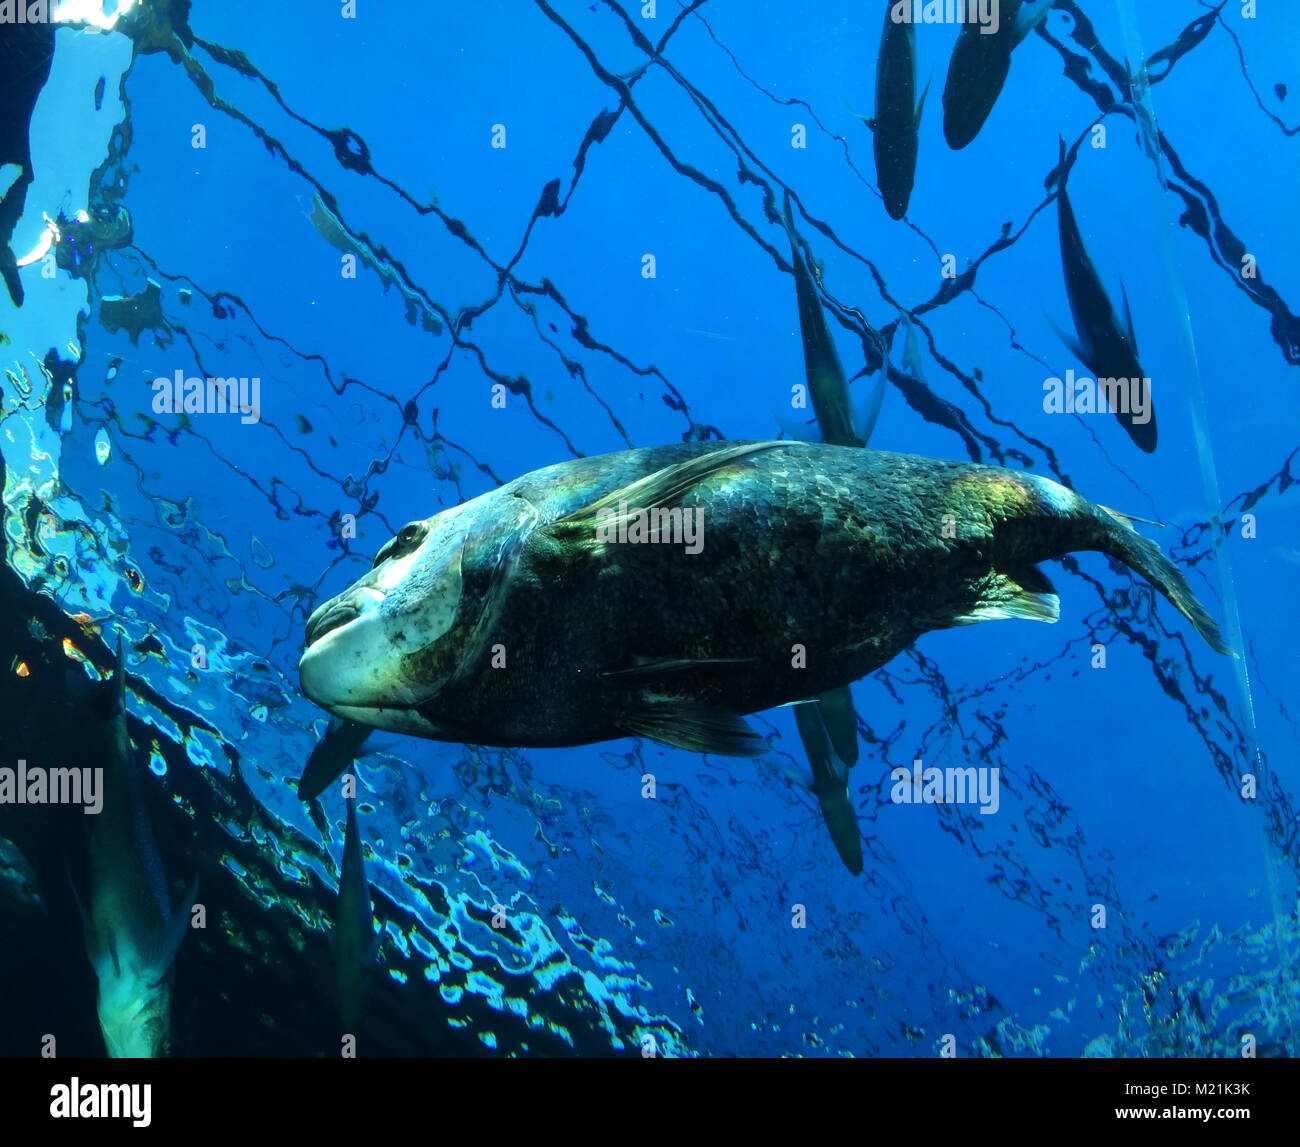 Bid fish underwater at Cape Town South Africa - Stock Image